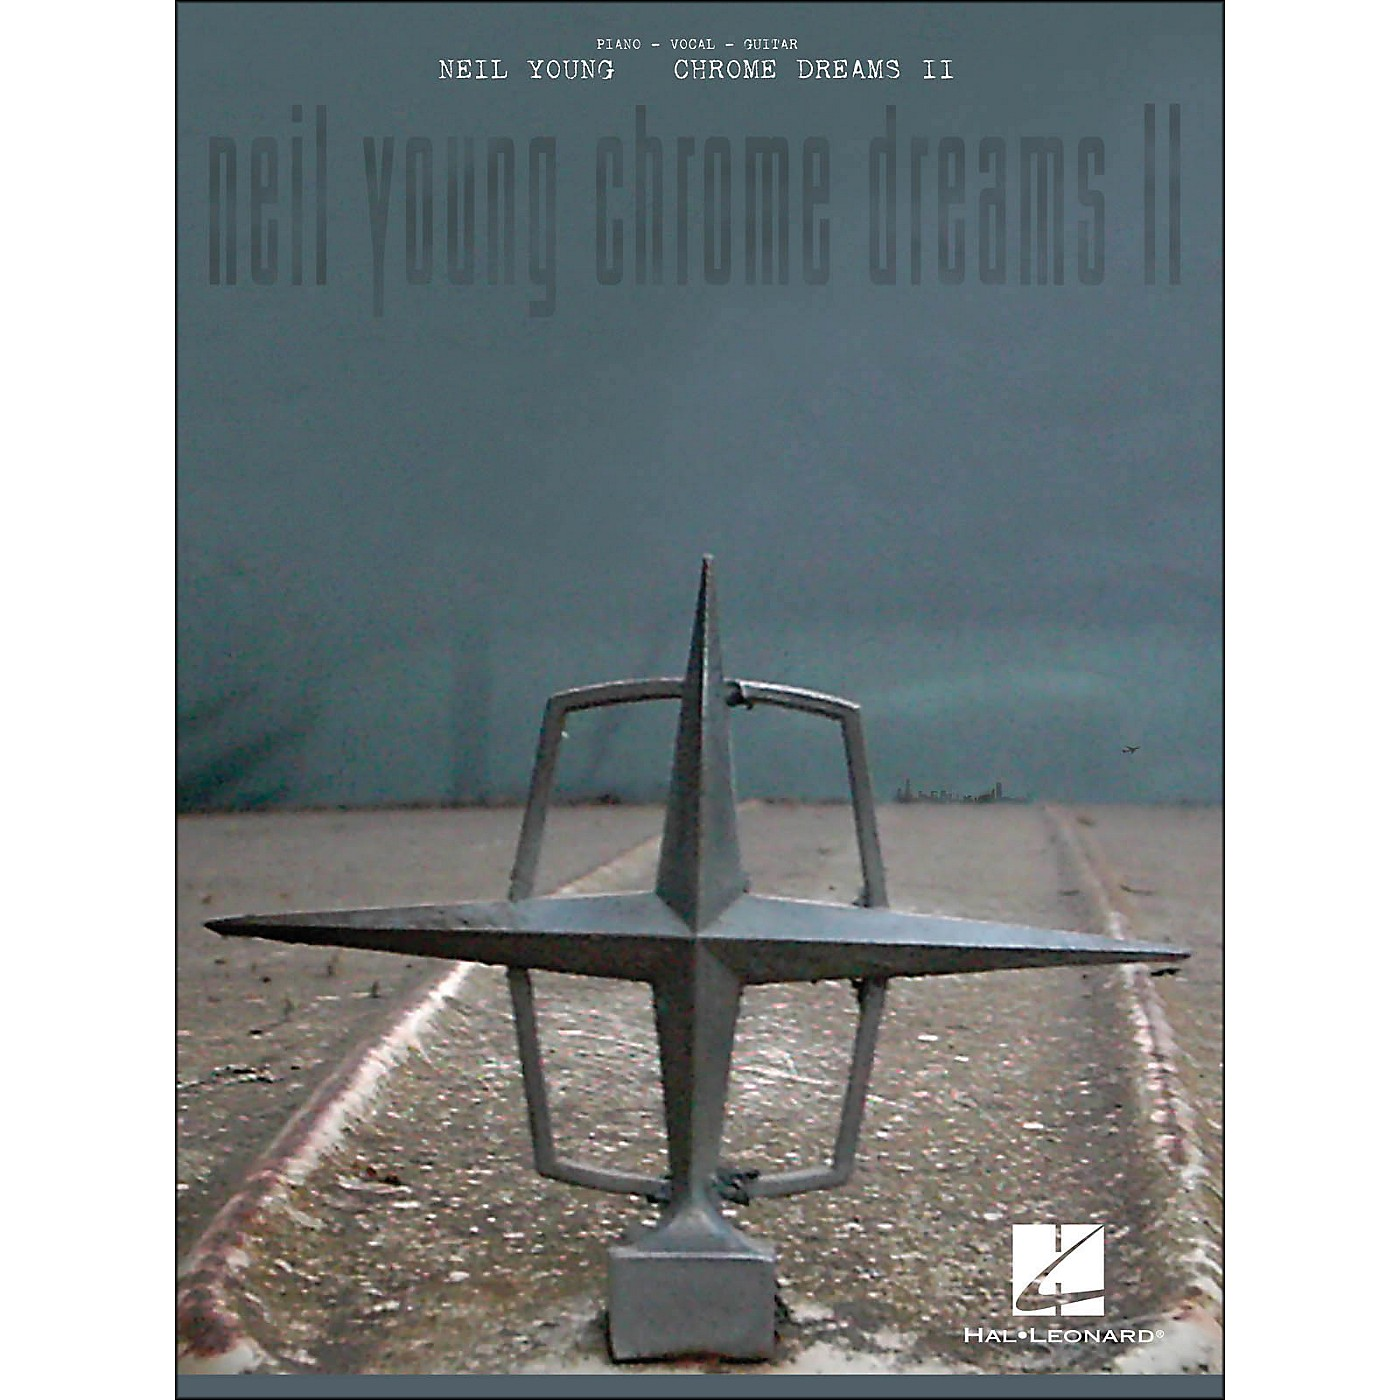 Hal Leonard Neil Young - Chrome Dreams Ii arranged for piano, vocal, and guitar (P/V/G) thumbnail